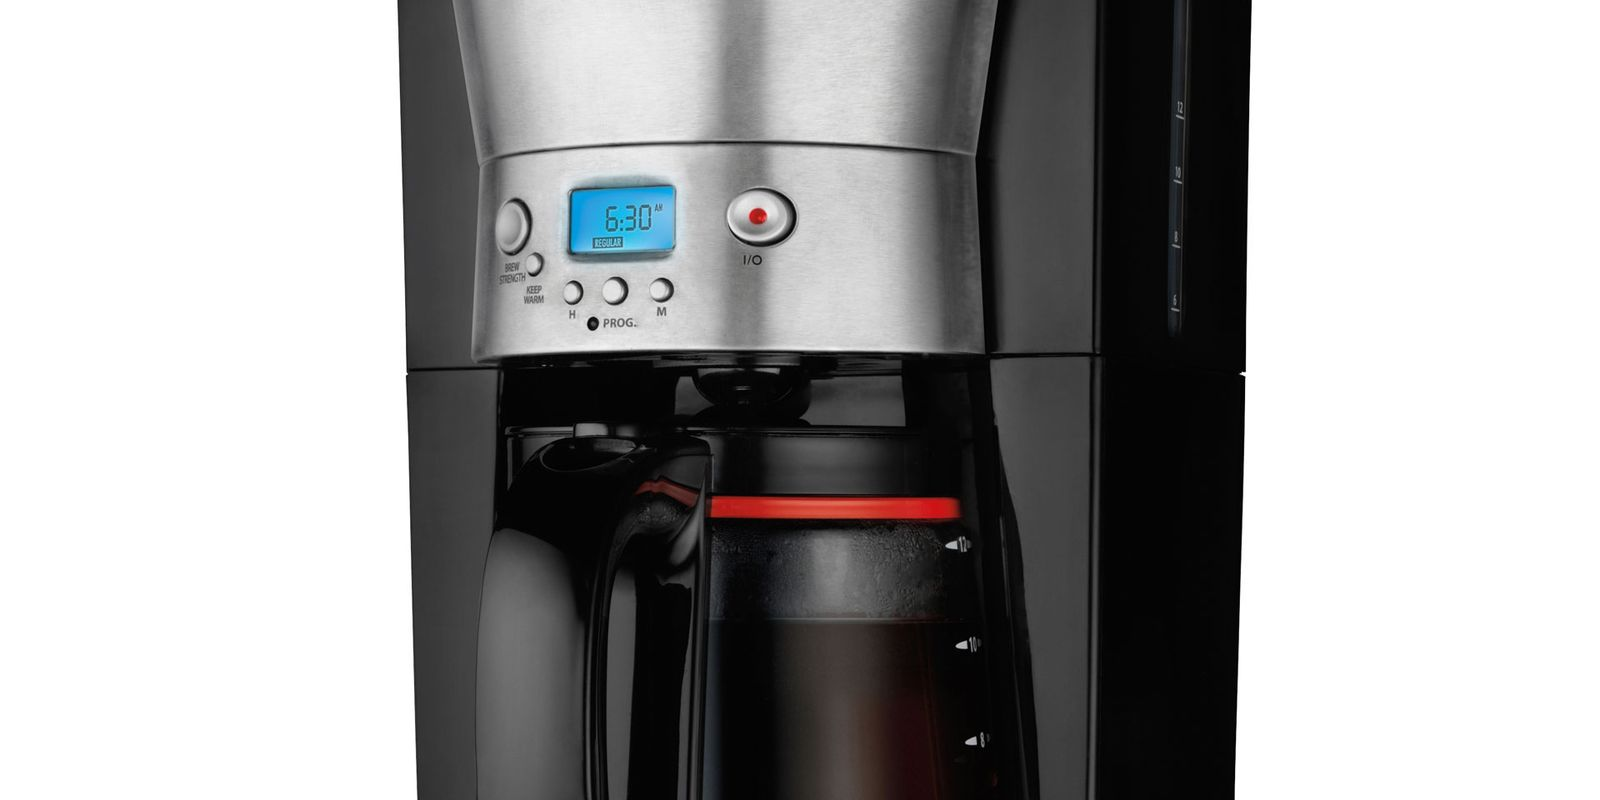 Coffee maker with grinder and thermal carafe -  Thermal Carafe Coffee Maker Features A Removable Water Tank April 2014